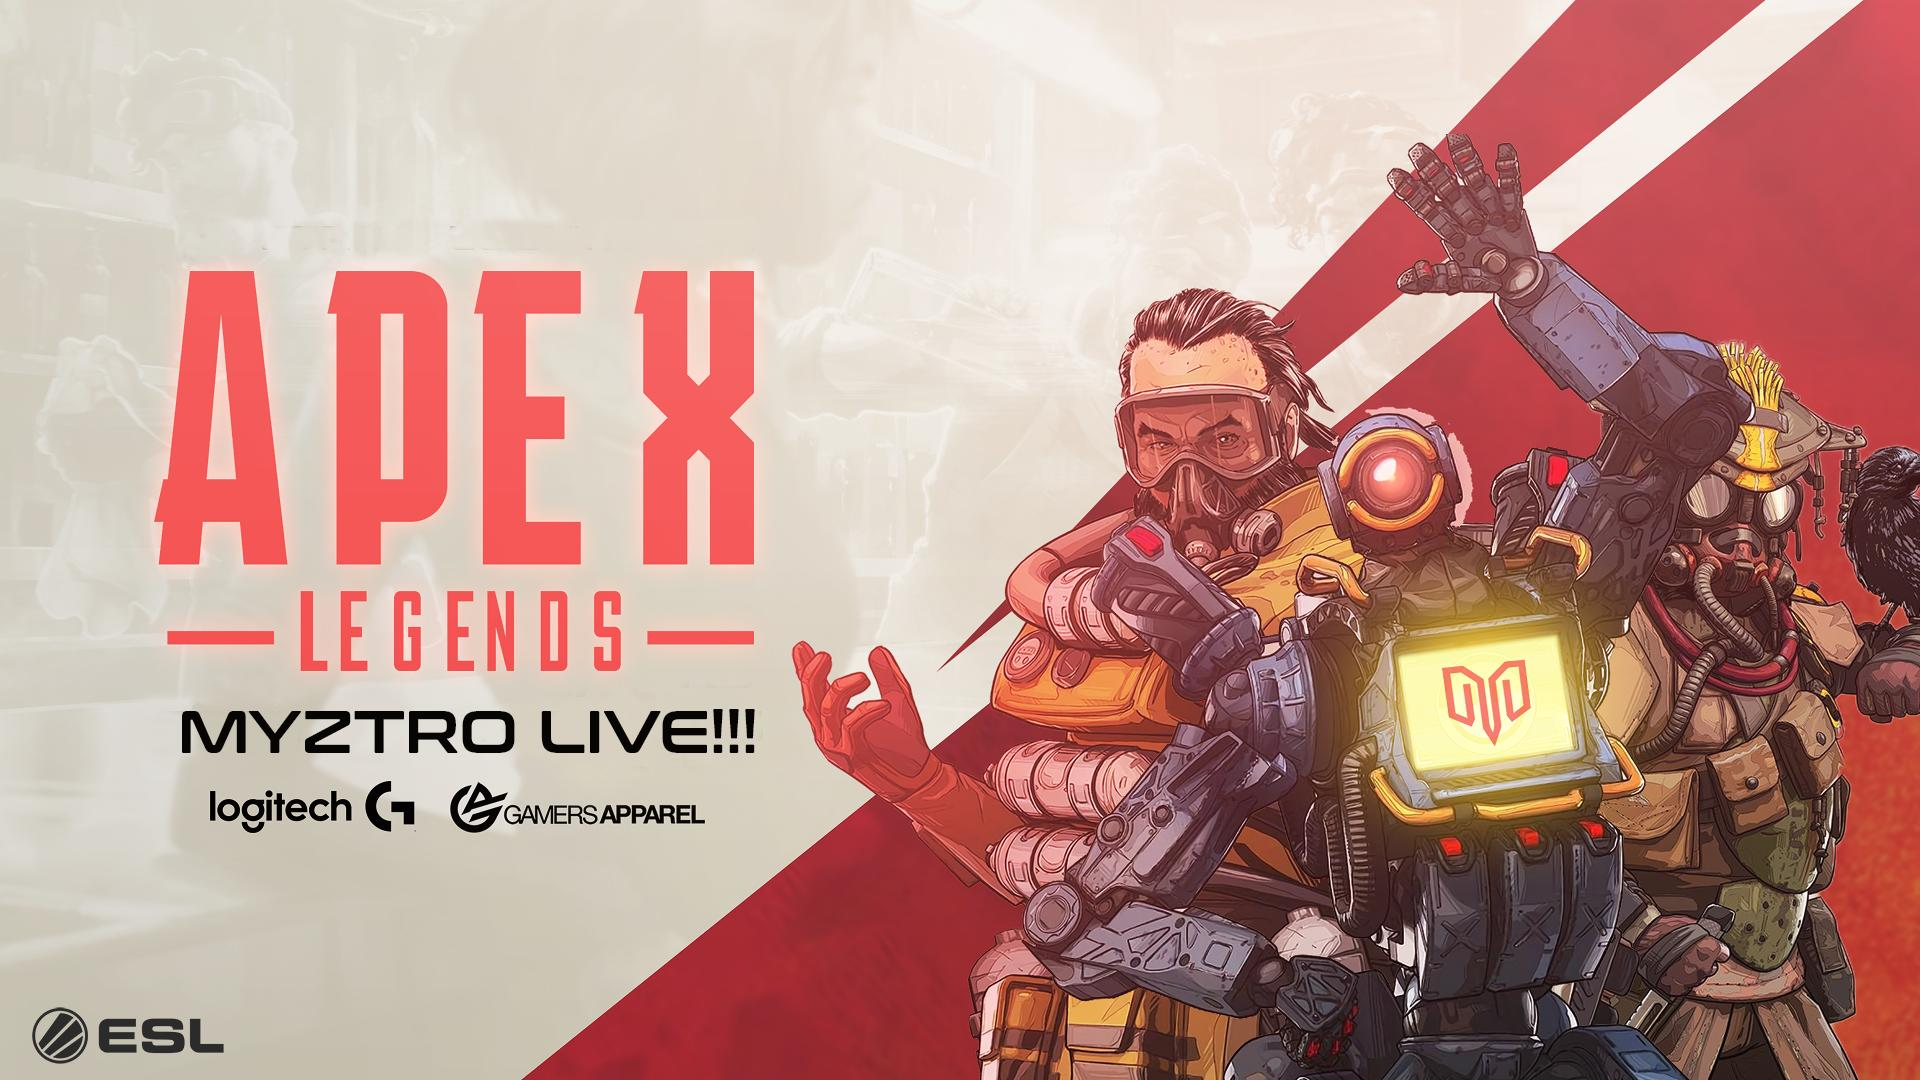 Myztro Win ESL Apex Legends 3 on 3 Open EU Cup #7